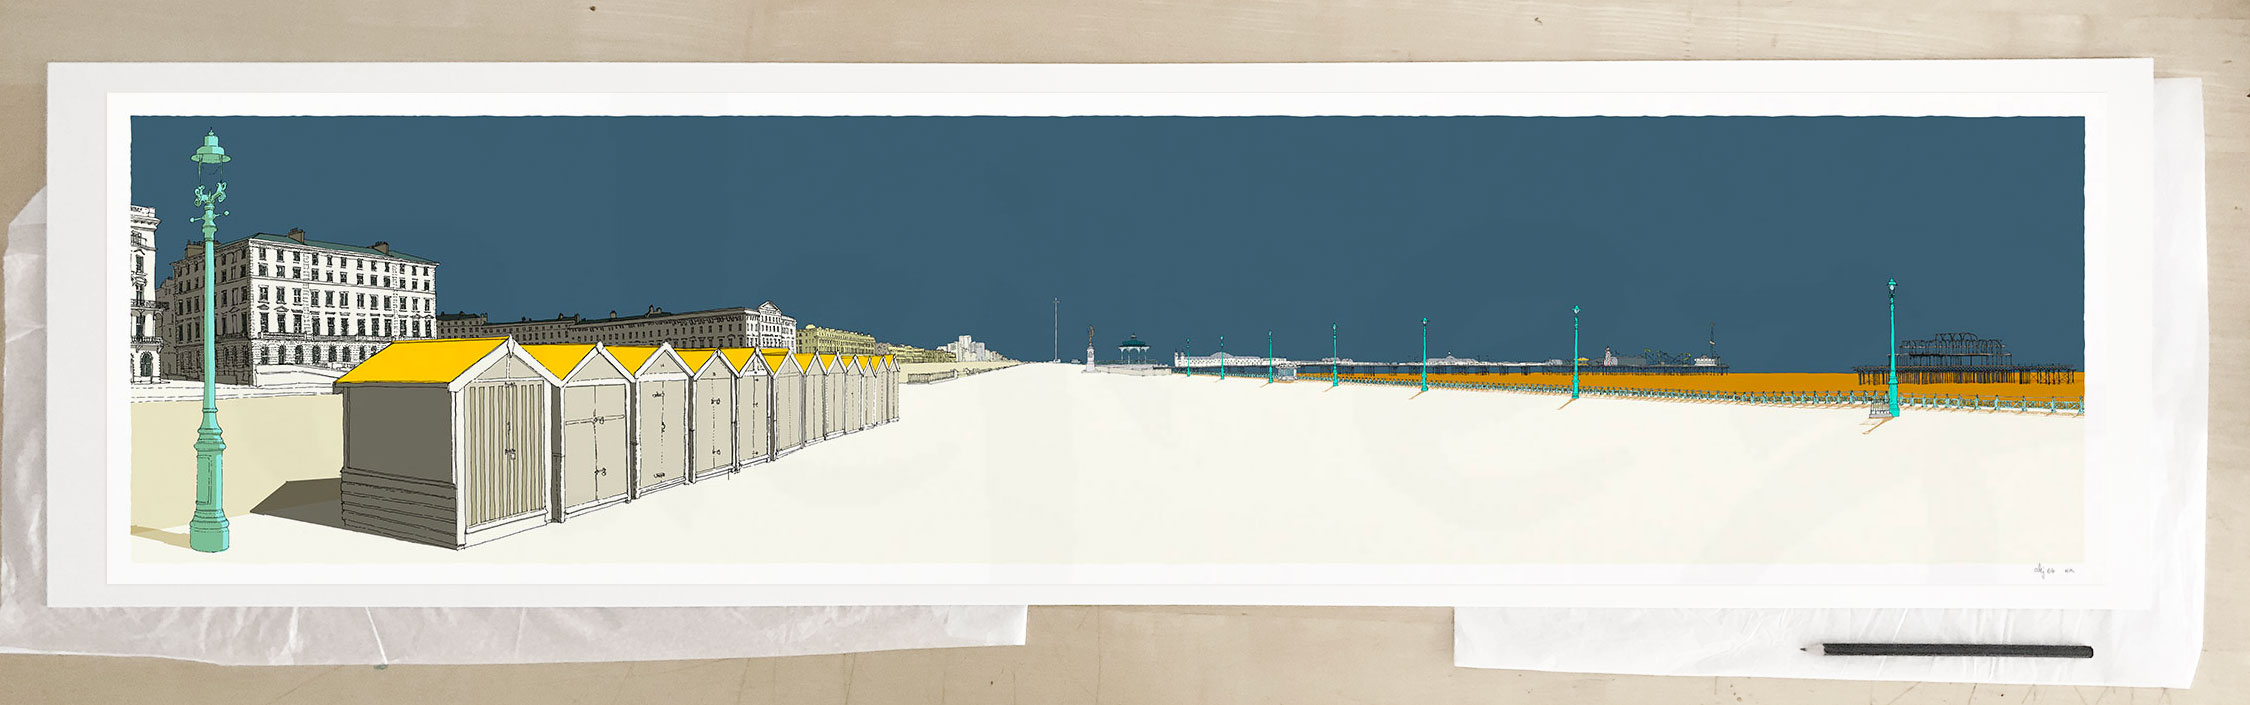 Fine art print by UK artist alej ez titled Palmeira Brunswick and the Two Piers Antique Blue and Ochre